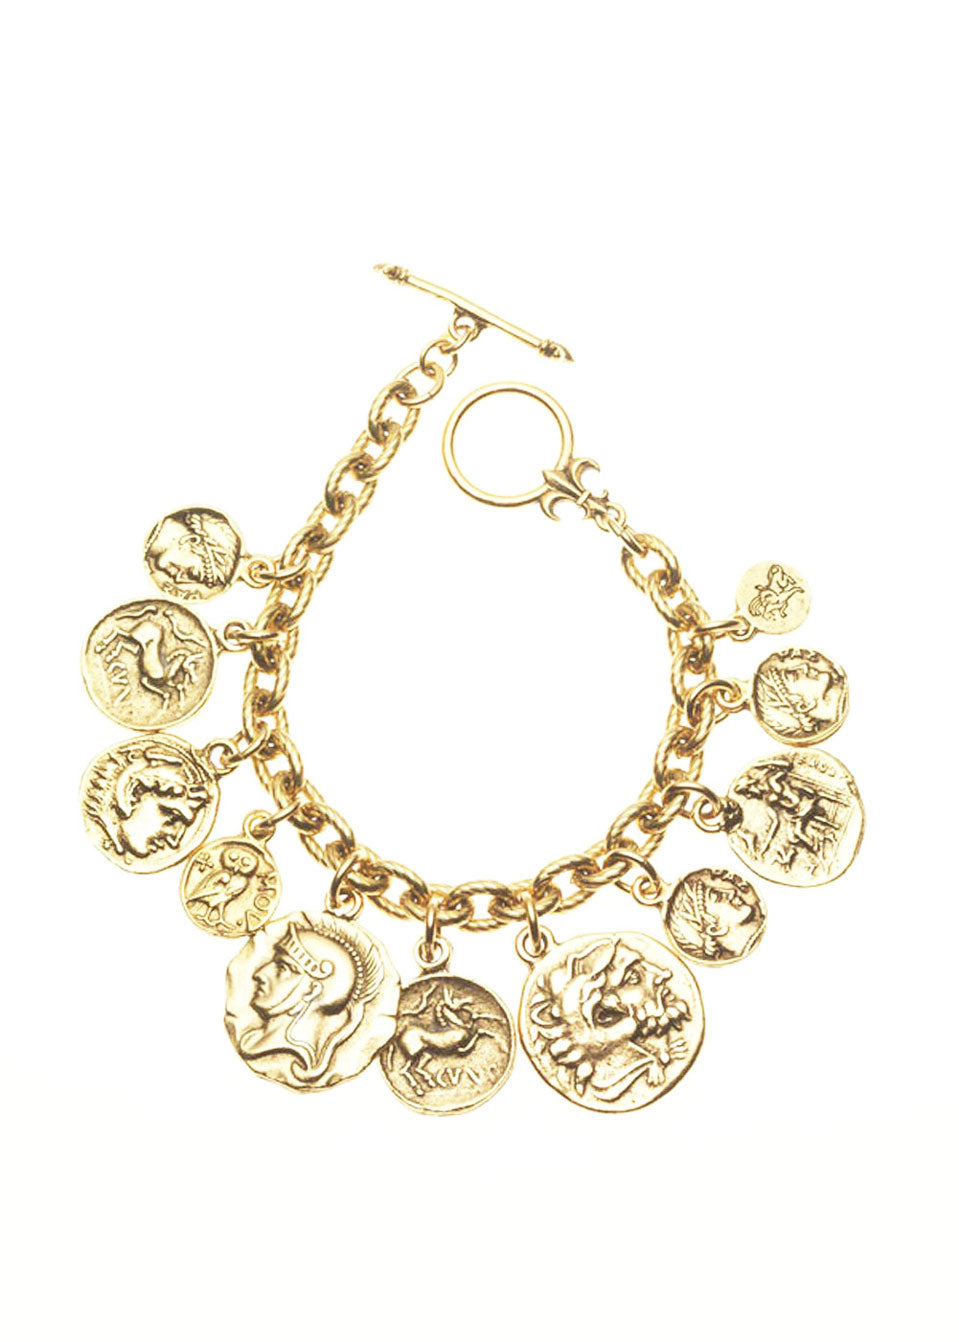 Gold Tone Greek-Roman Coin Bracelet